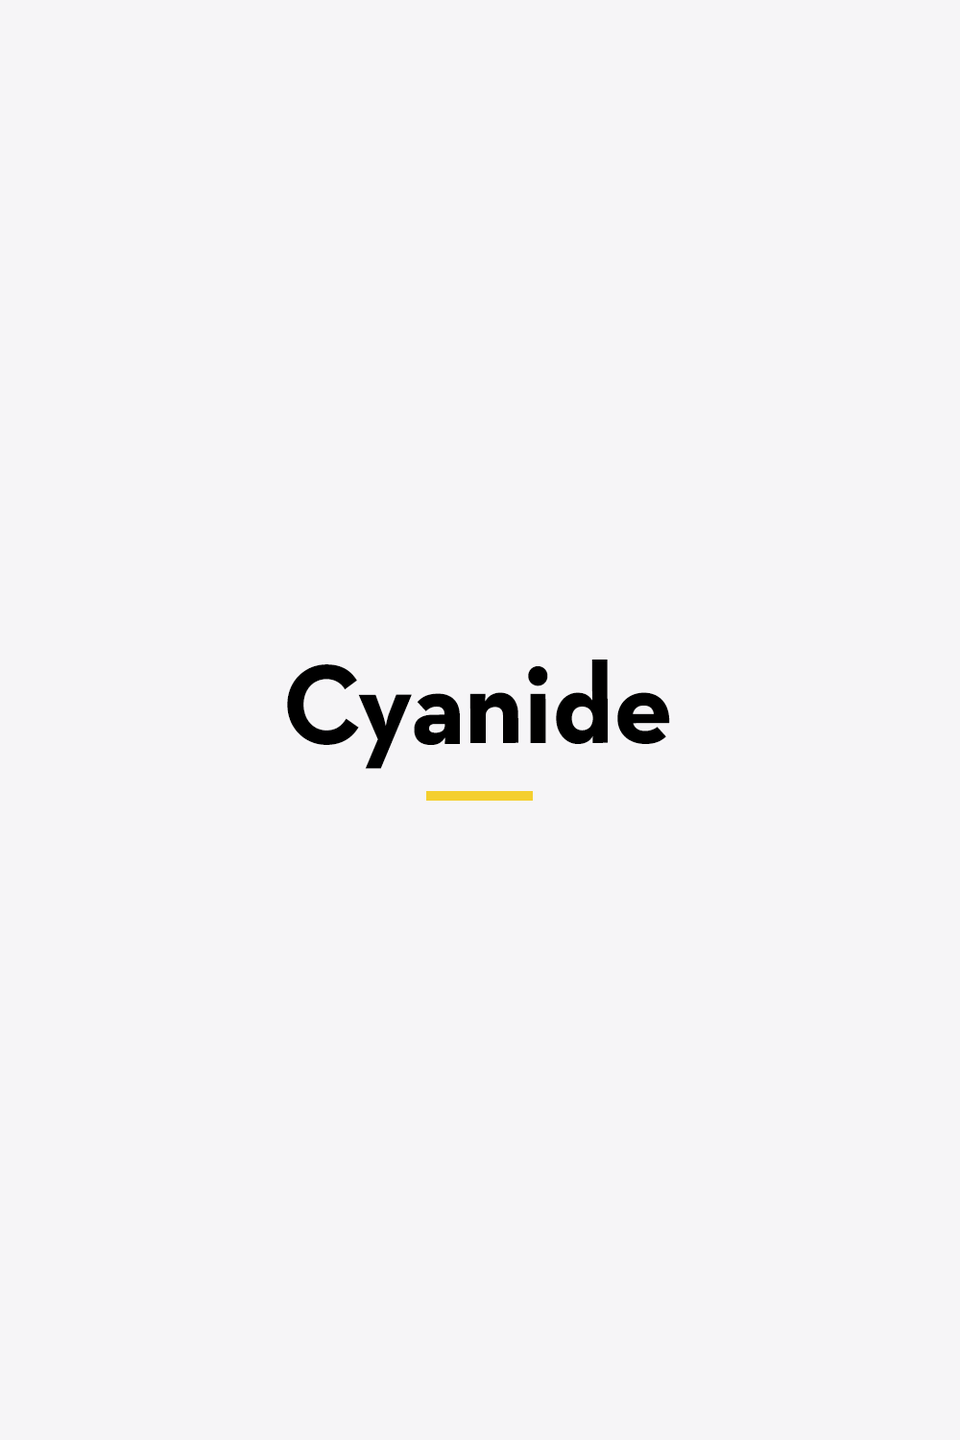 "<p>A mother in Wales thought Cyanide would be a good choice for a name because it had a positive aura around it, since Cyanide was the poison that killed Hitler. The courts disagreed. In a very unusual ruling, the judge decided that the baby girl — <em>and</em> her twin brother, who was given the less-poisonous name Preacher — would get to <a href=""https://www.bbc.com/news/uk-wales-mid-wales-36045987"" rel=""nofollow noopener"" target=""_blank"" data-ylk=""slk:be re-named by the twins' older half-siblings"" class=""link rapid-noclick-resp"">be re-named by the twins' older half-siblings</a>.</p>"